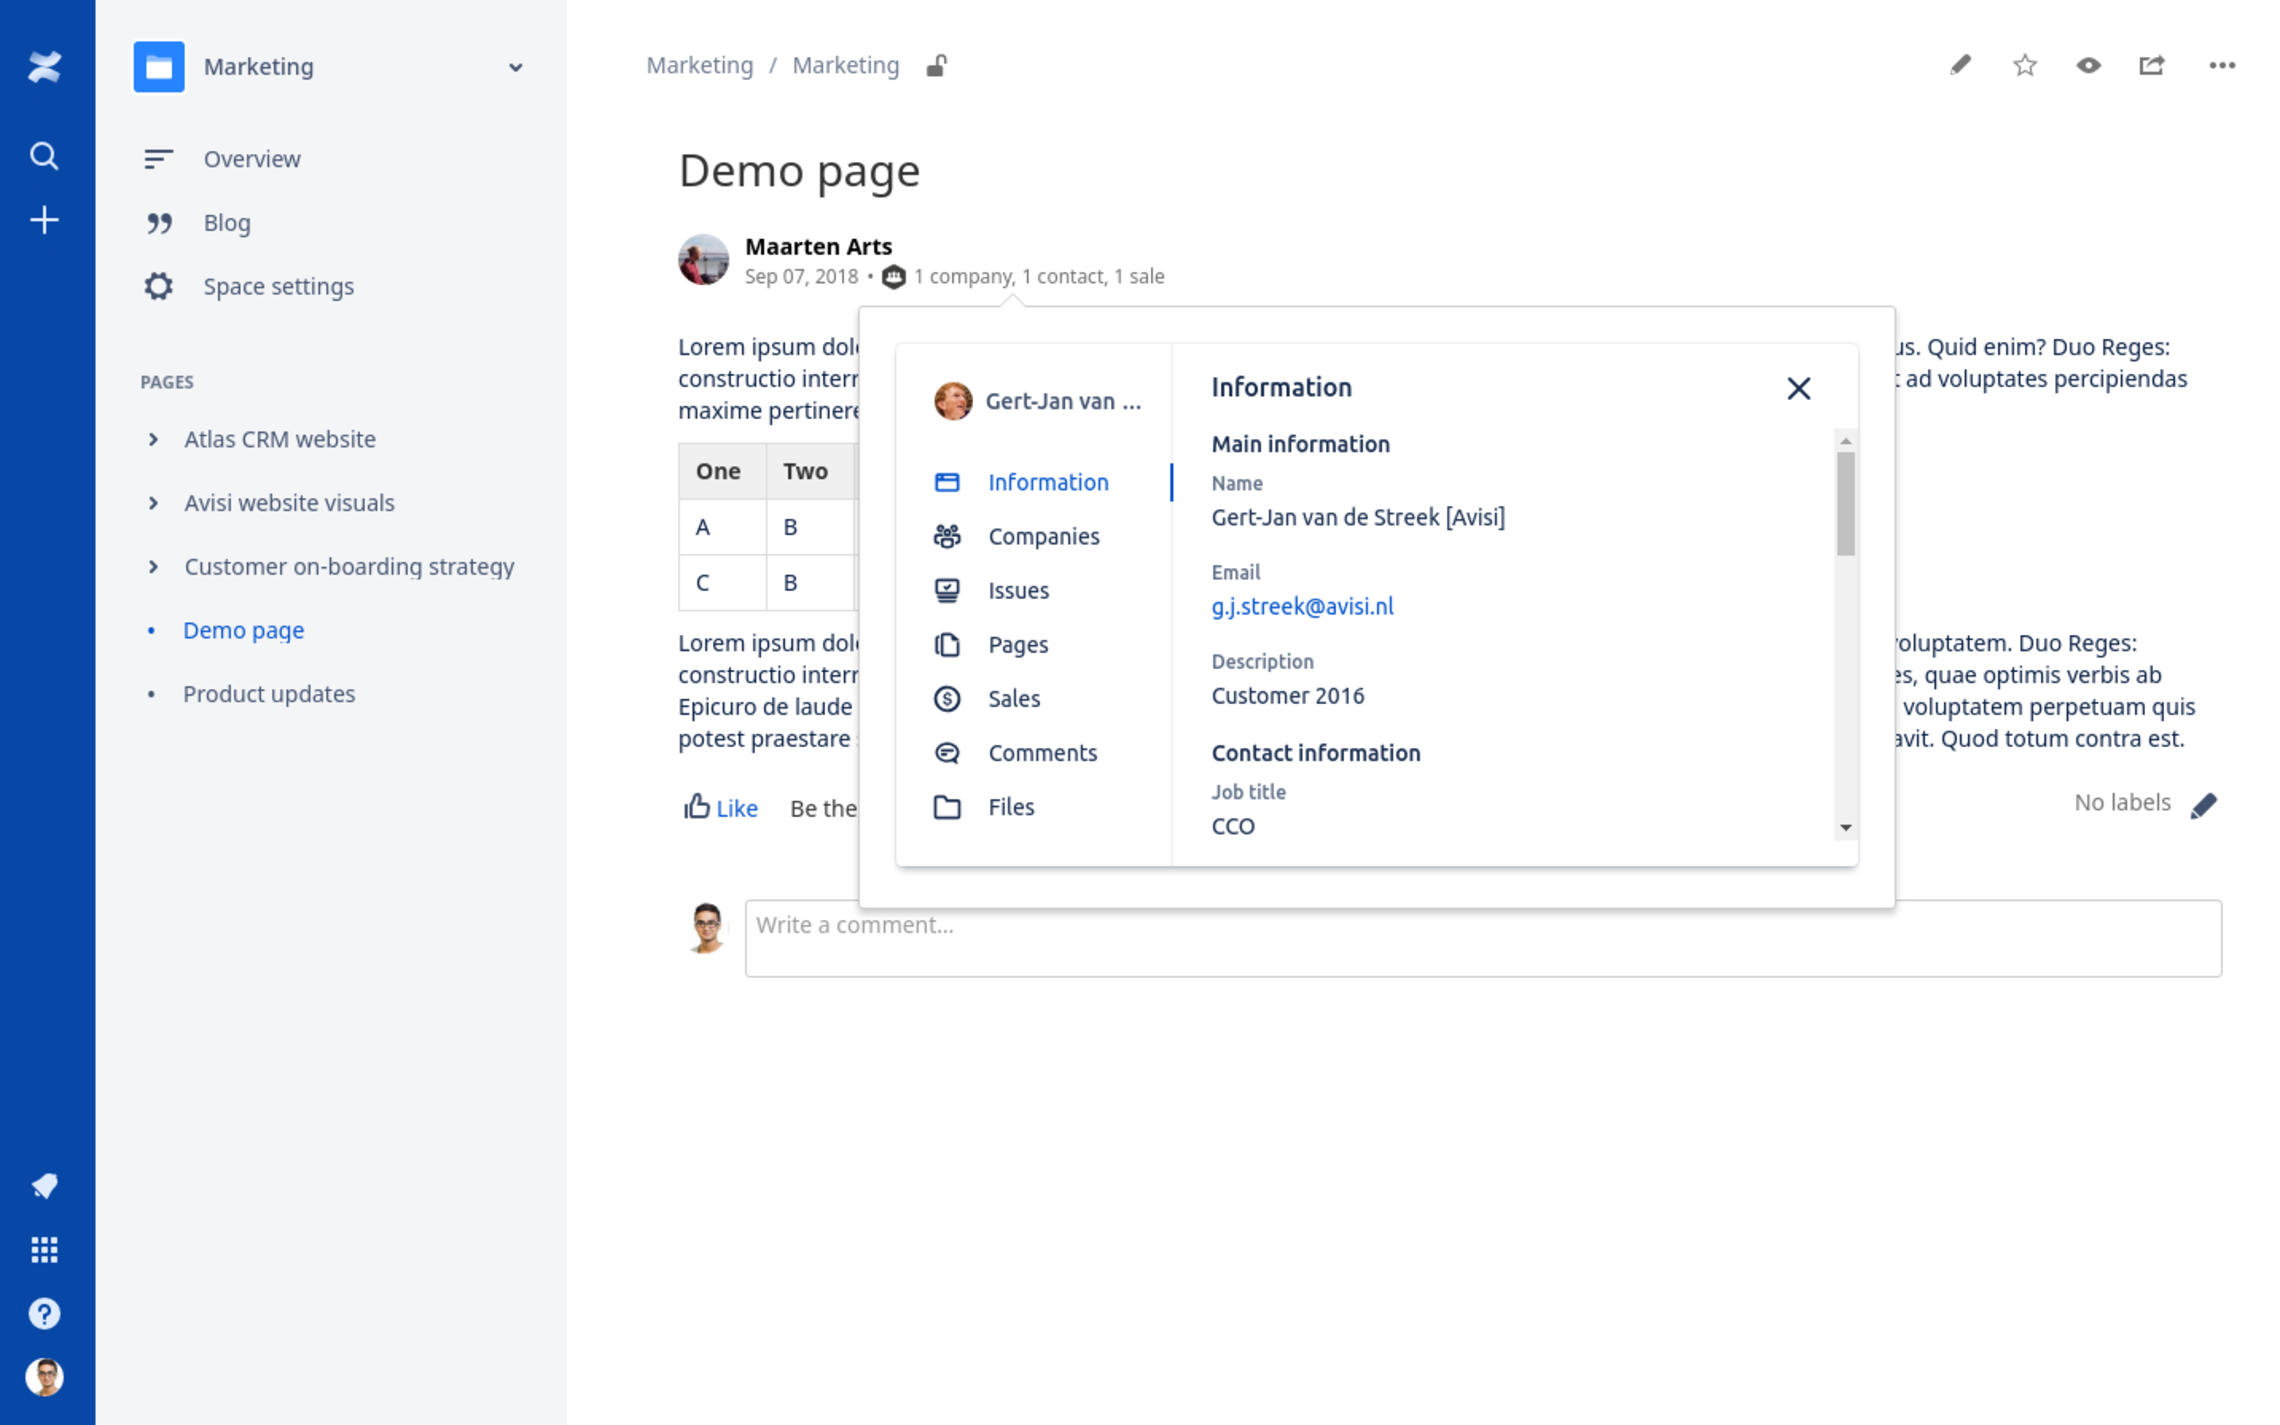 More information about a customer in a Confluence page